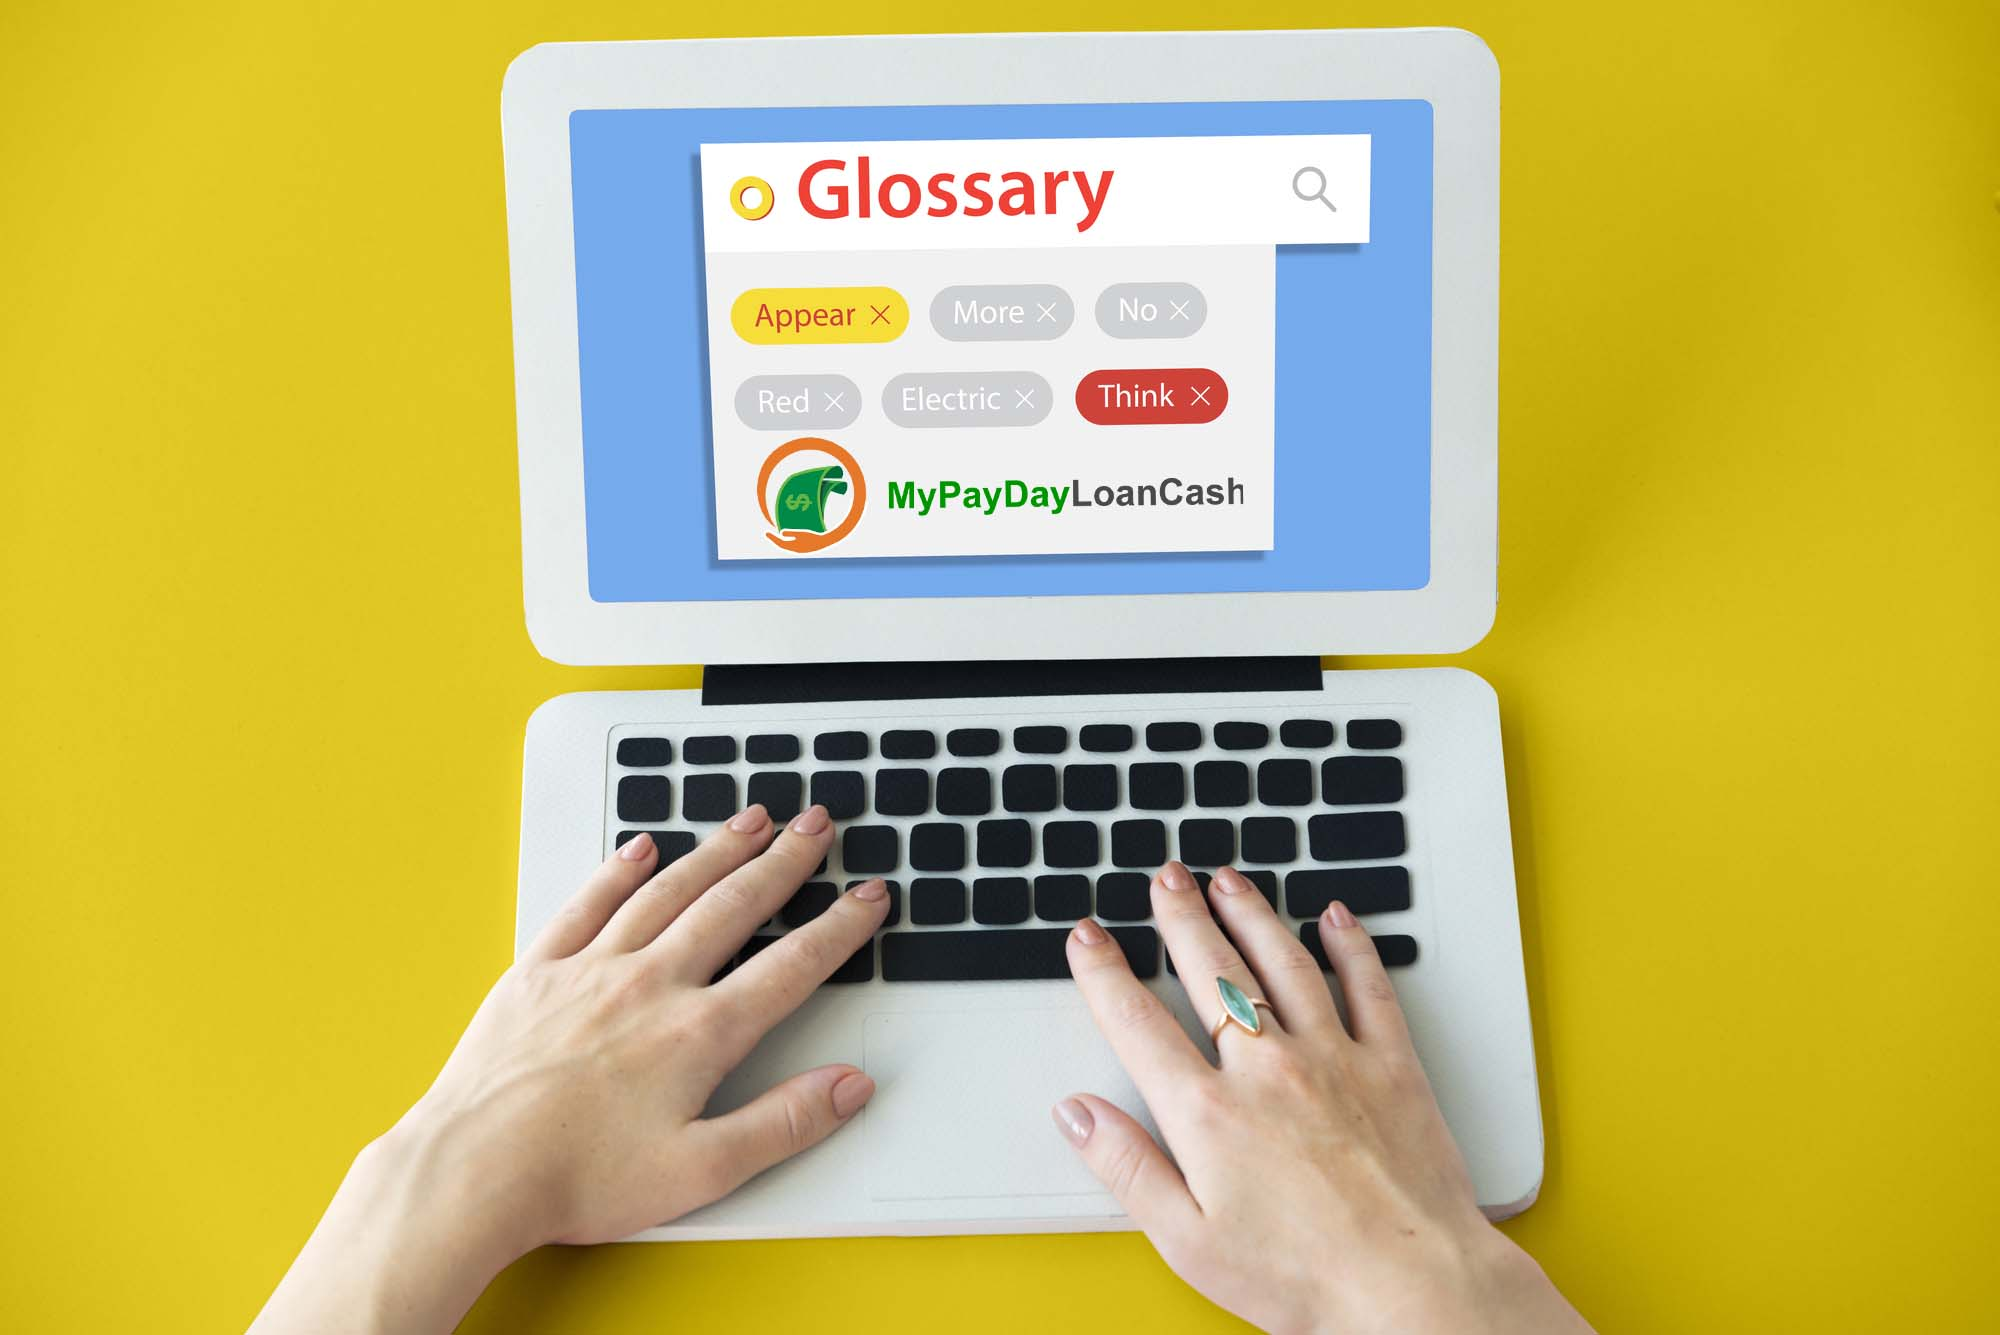 pay day loans glossary image